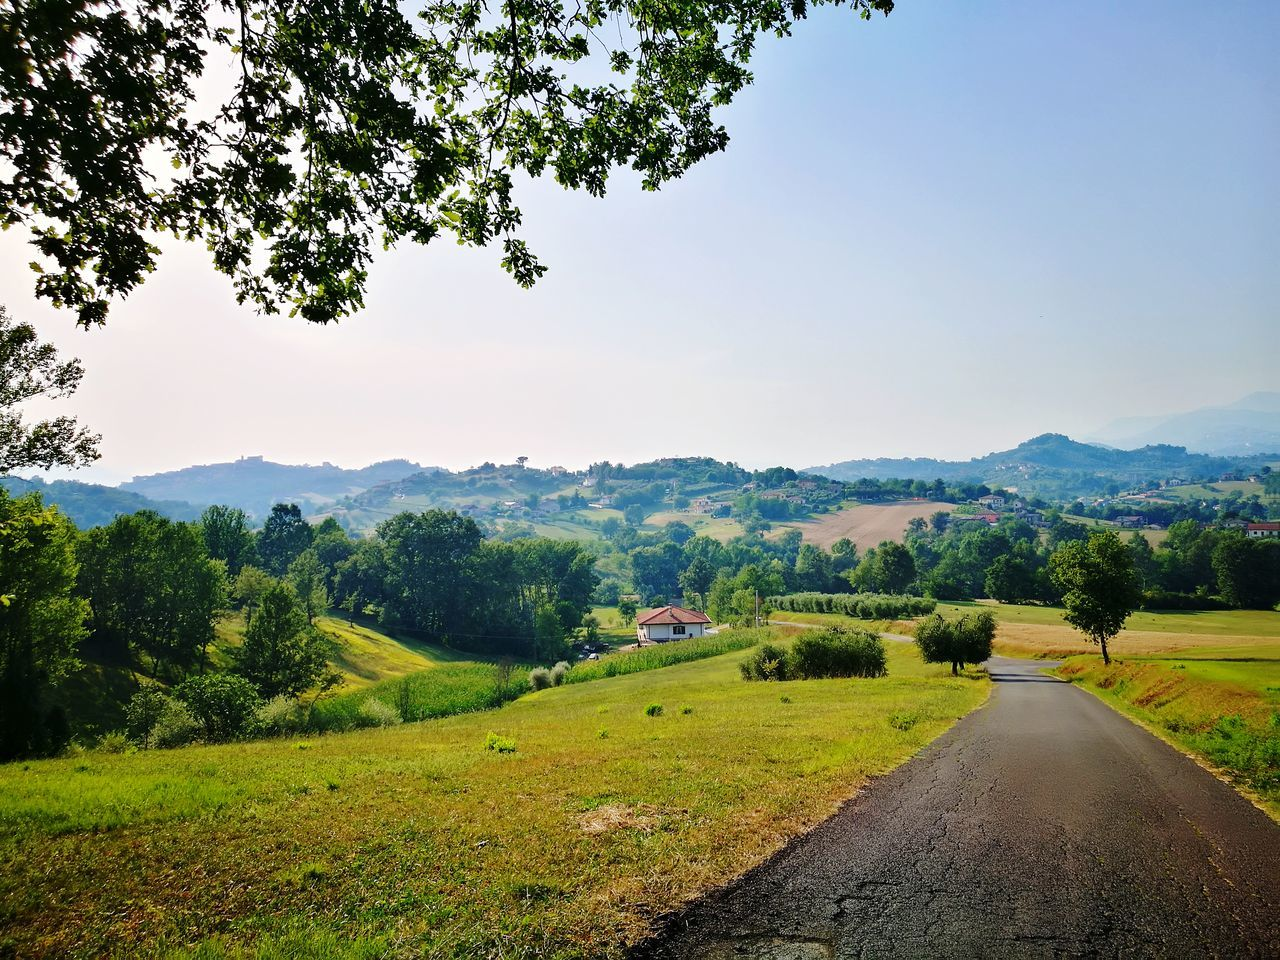 Tree Landscape Mountain Outdoors Scenics Mountain Range Nature No People Sky Beauty In Nature Rural Scene Road Forest Day Freshness Countryside Italycountryside Nature Beautiful Day Beautiful Place Travel Italy🇮🇹 Wonderful Place To Visit Walkingalone Walking Around